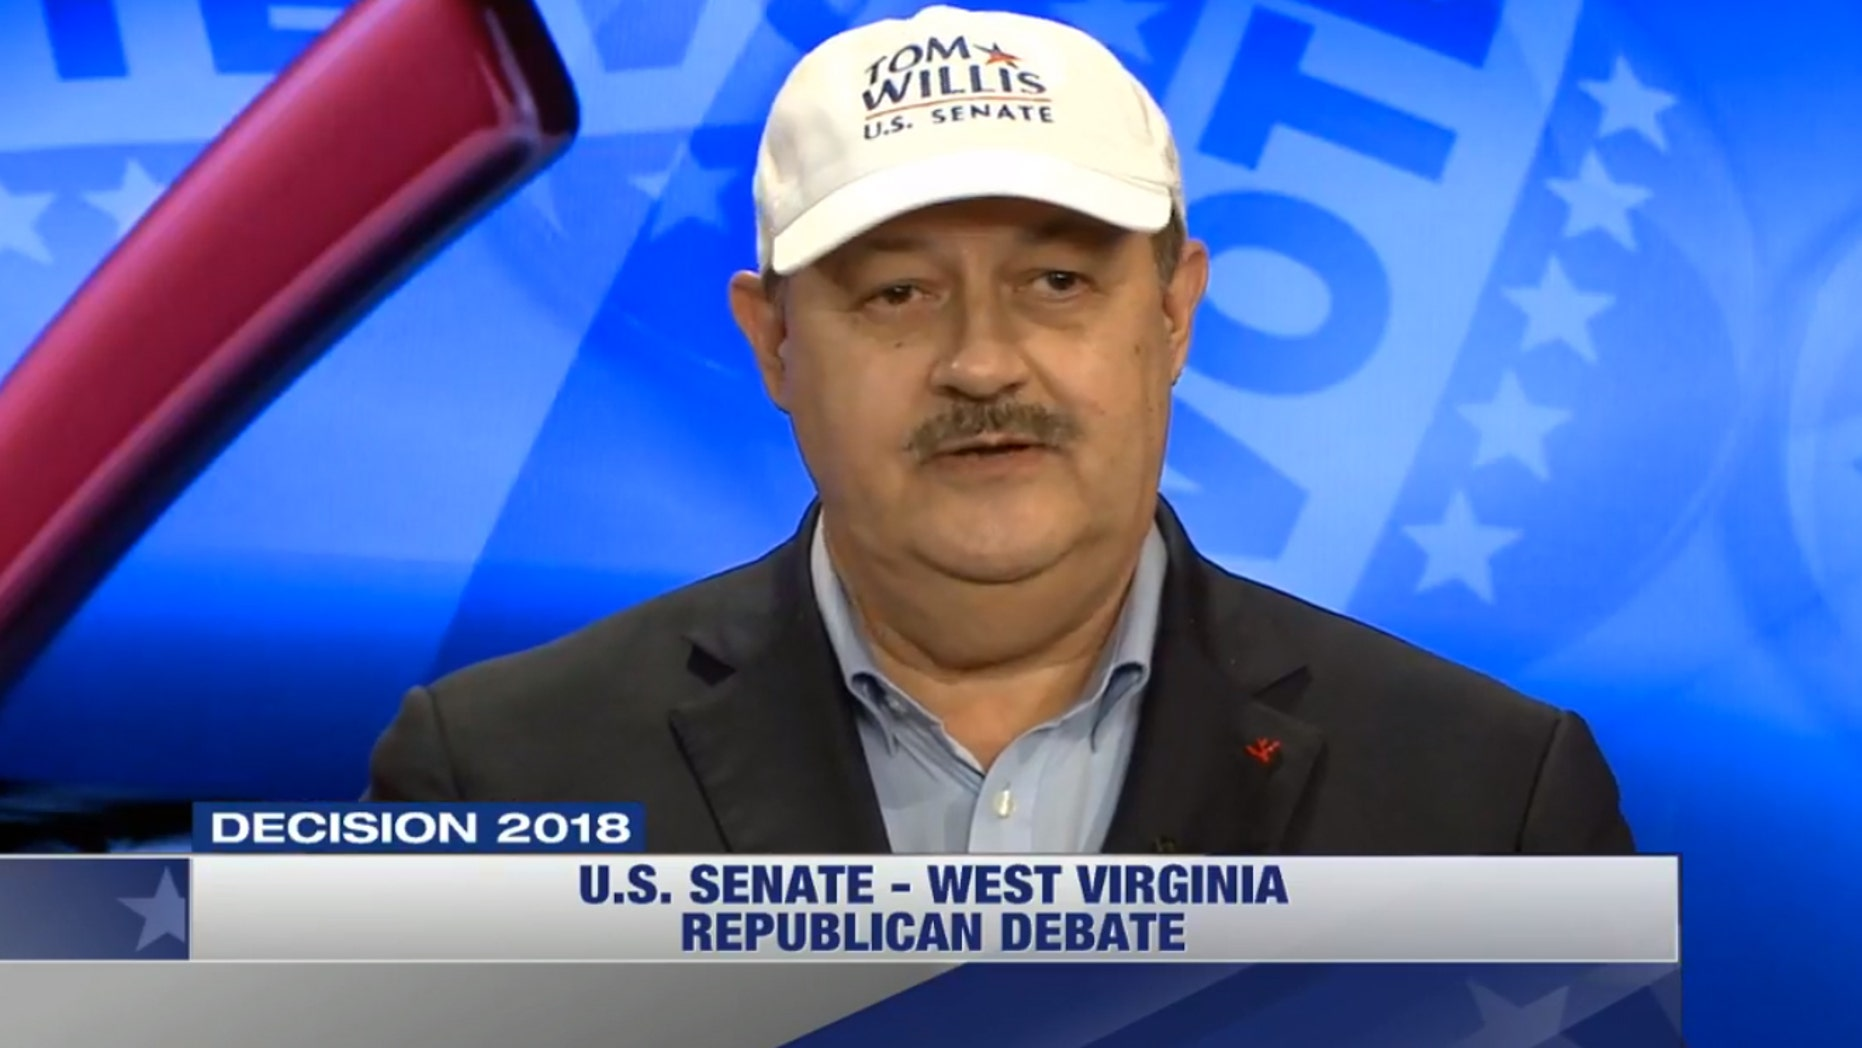 "During a televised debate Tuesday, Don Blankenship, a Republican candidate for Senate in West Virginia, wore a hat that said, in bold lettering: ""Tom Willis, U.S. Senate."""